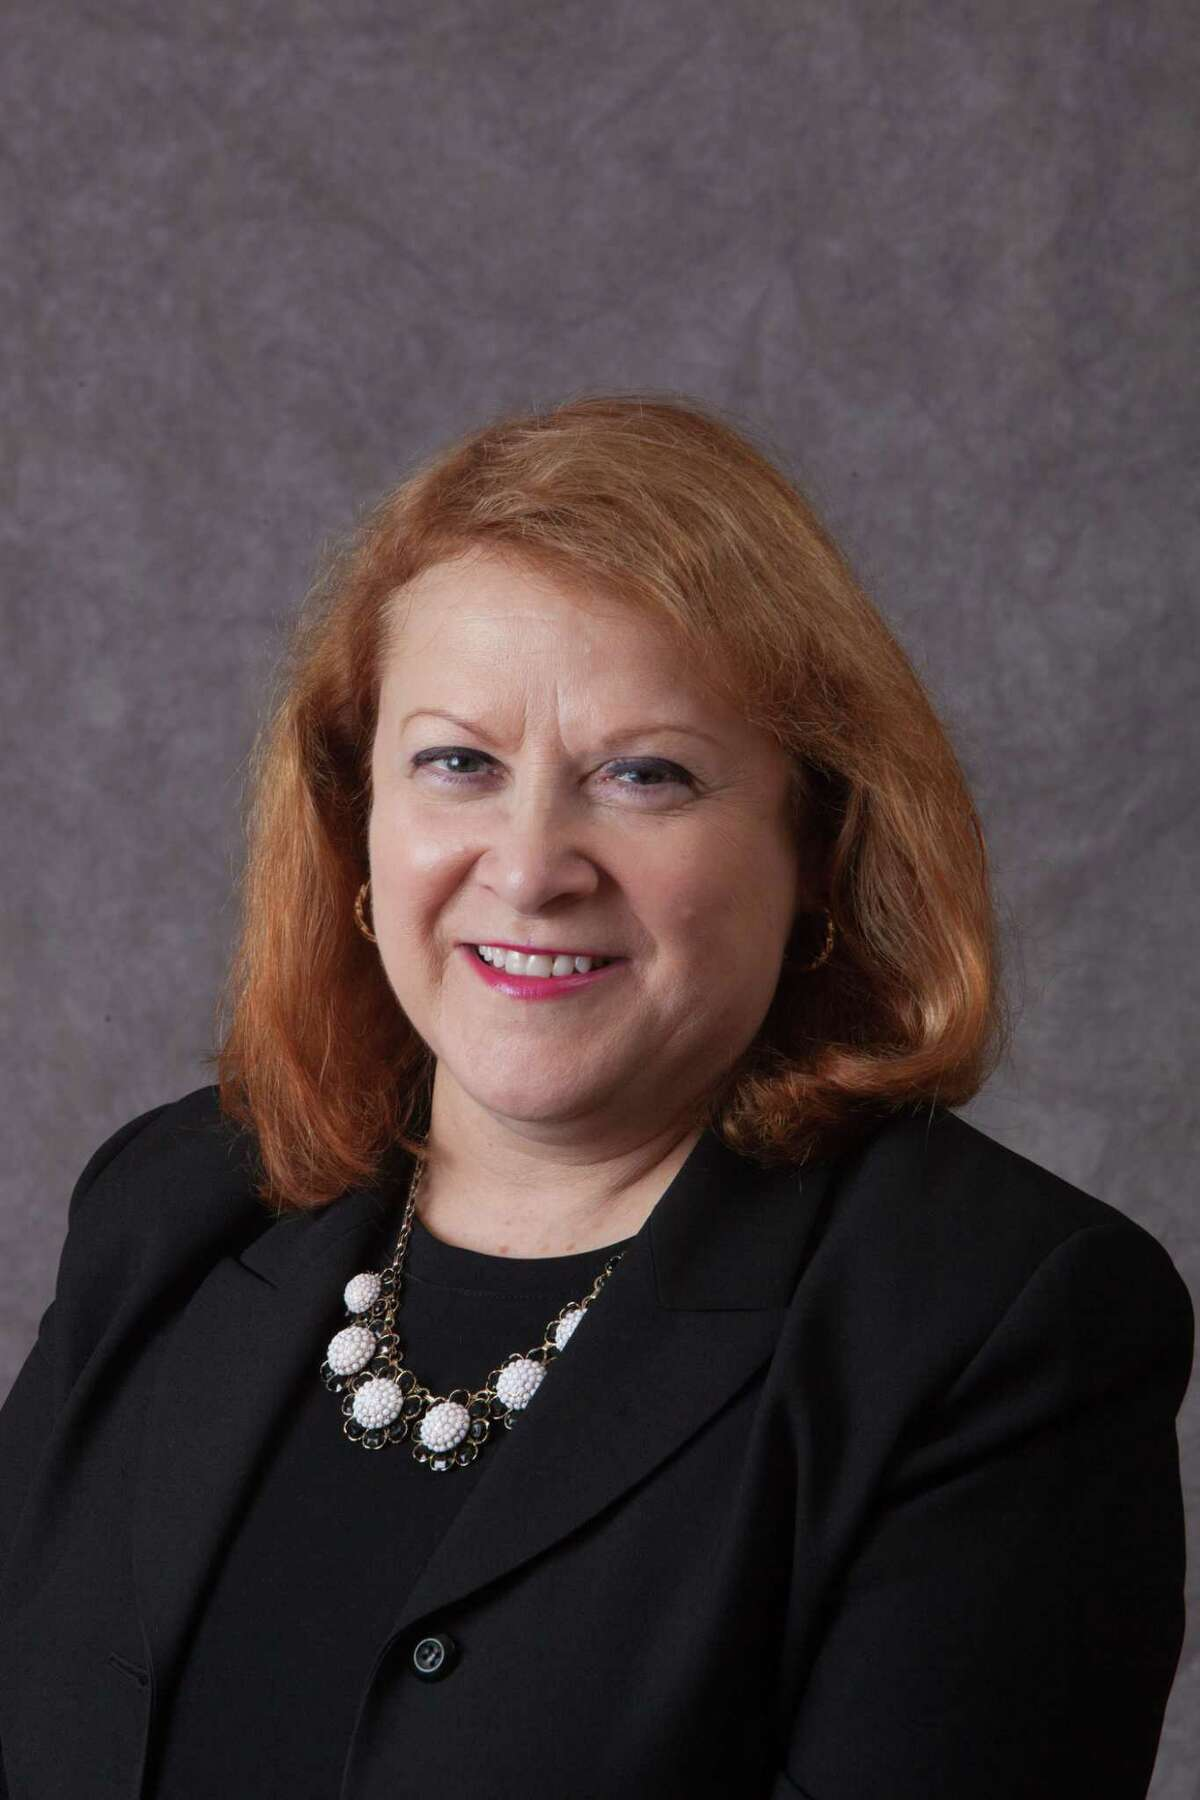 Lucinda Timpanelli, Trumbull Board of Education chairman